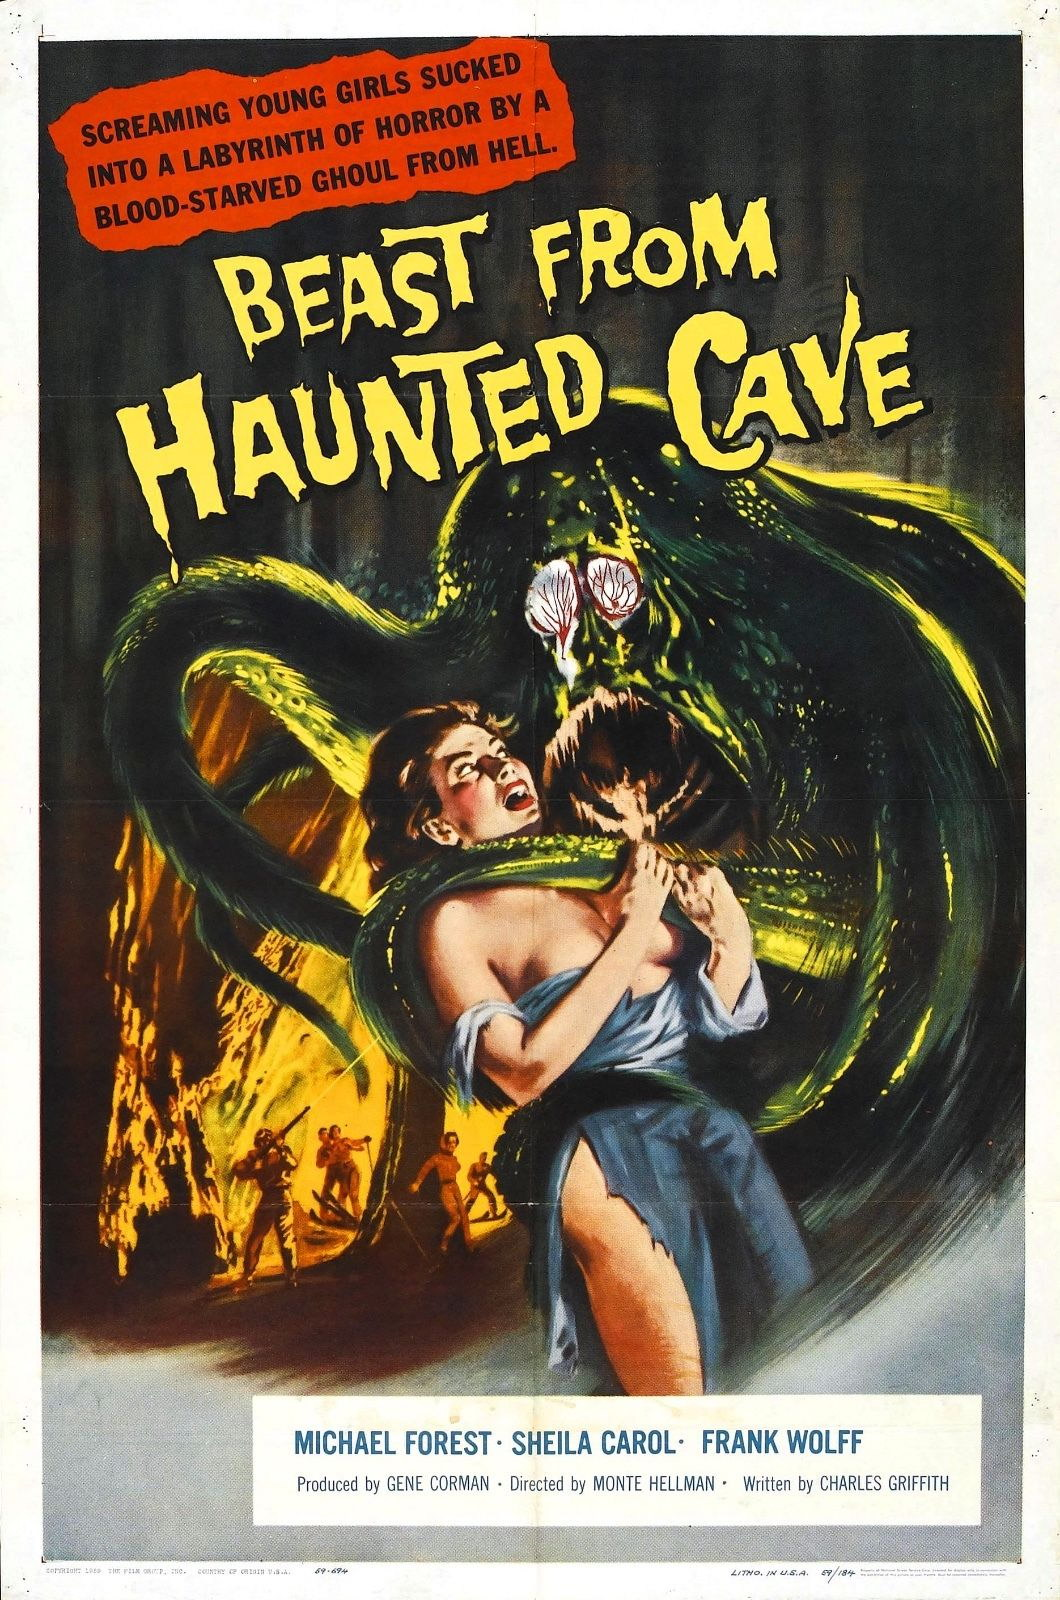 73967-Beast-from-Haunted-Cave-Movie-1959-Thriller-FRAMED-CANVAS-PRINT-Toile